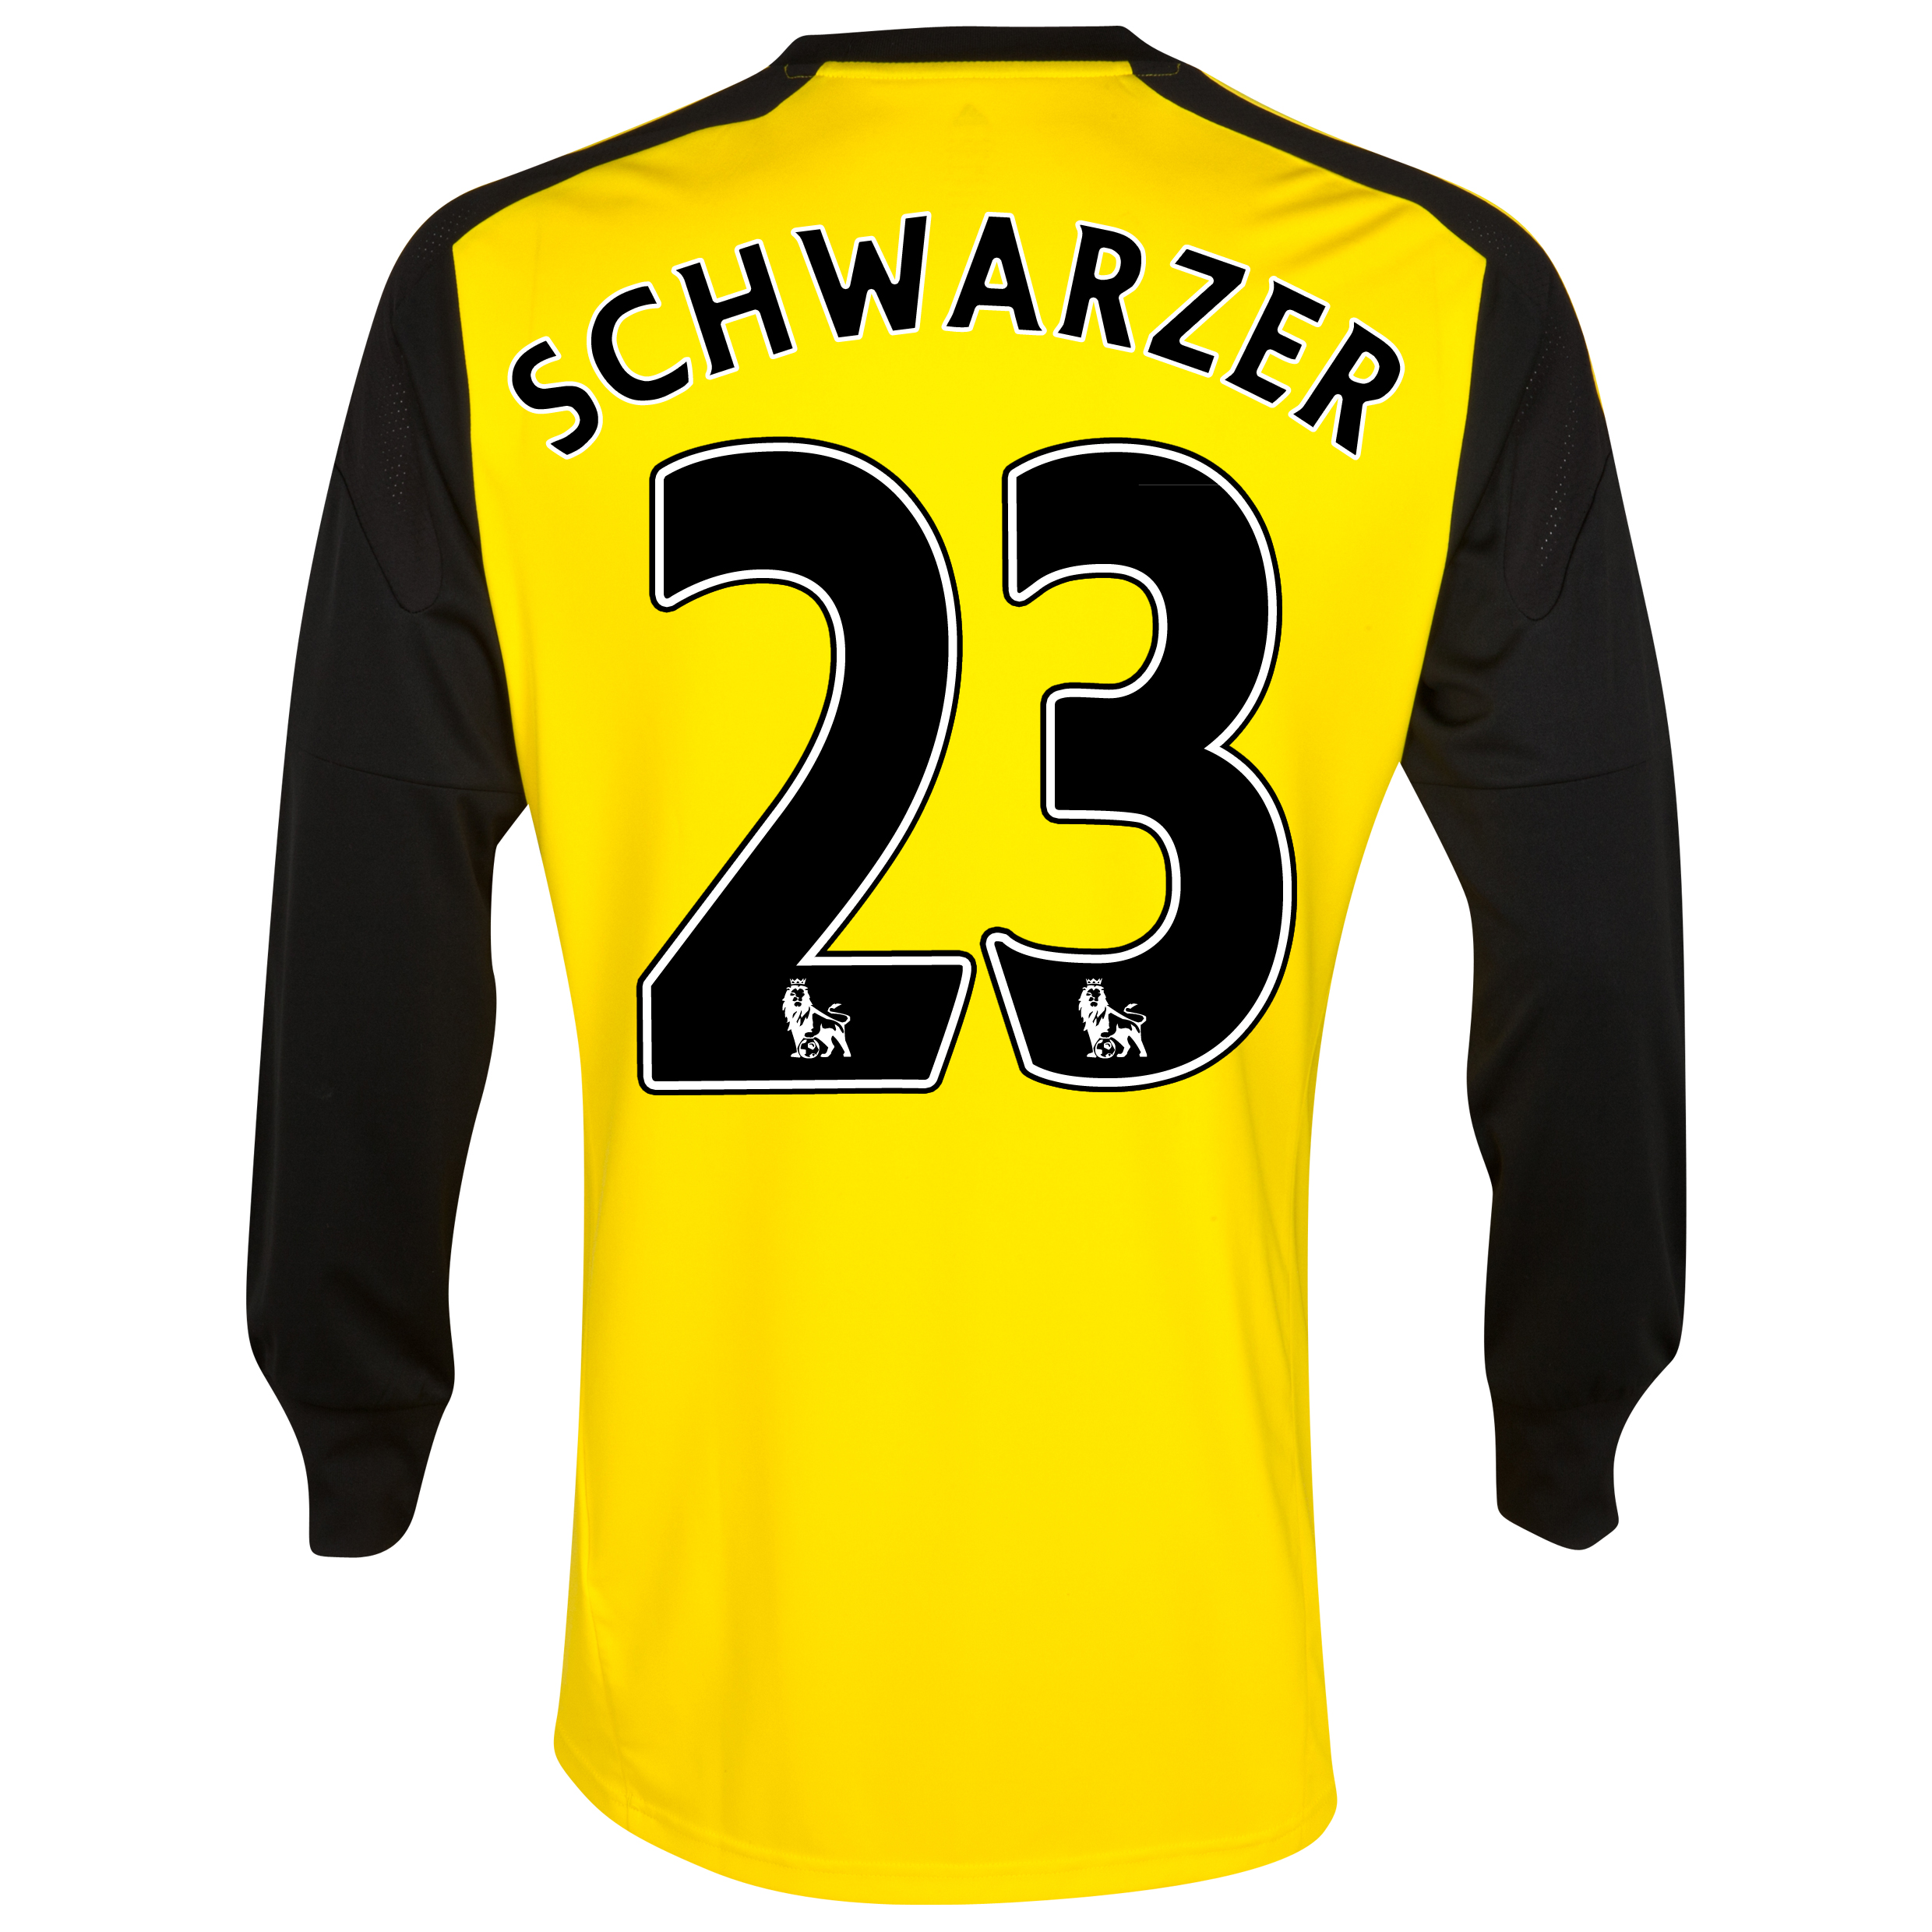 Chelsea Home Goalkeeper Mini Kit 2013/14 with Schwarzer 23 printing